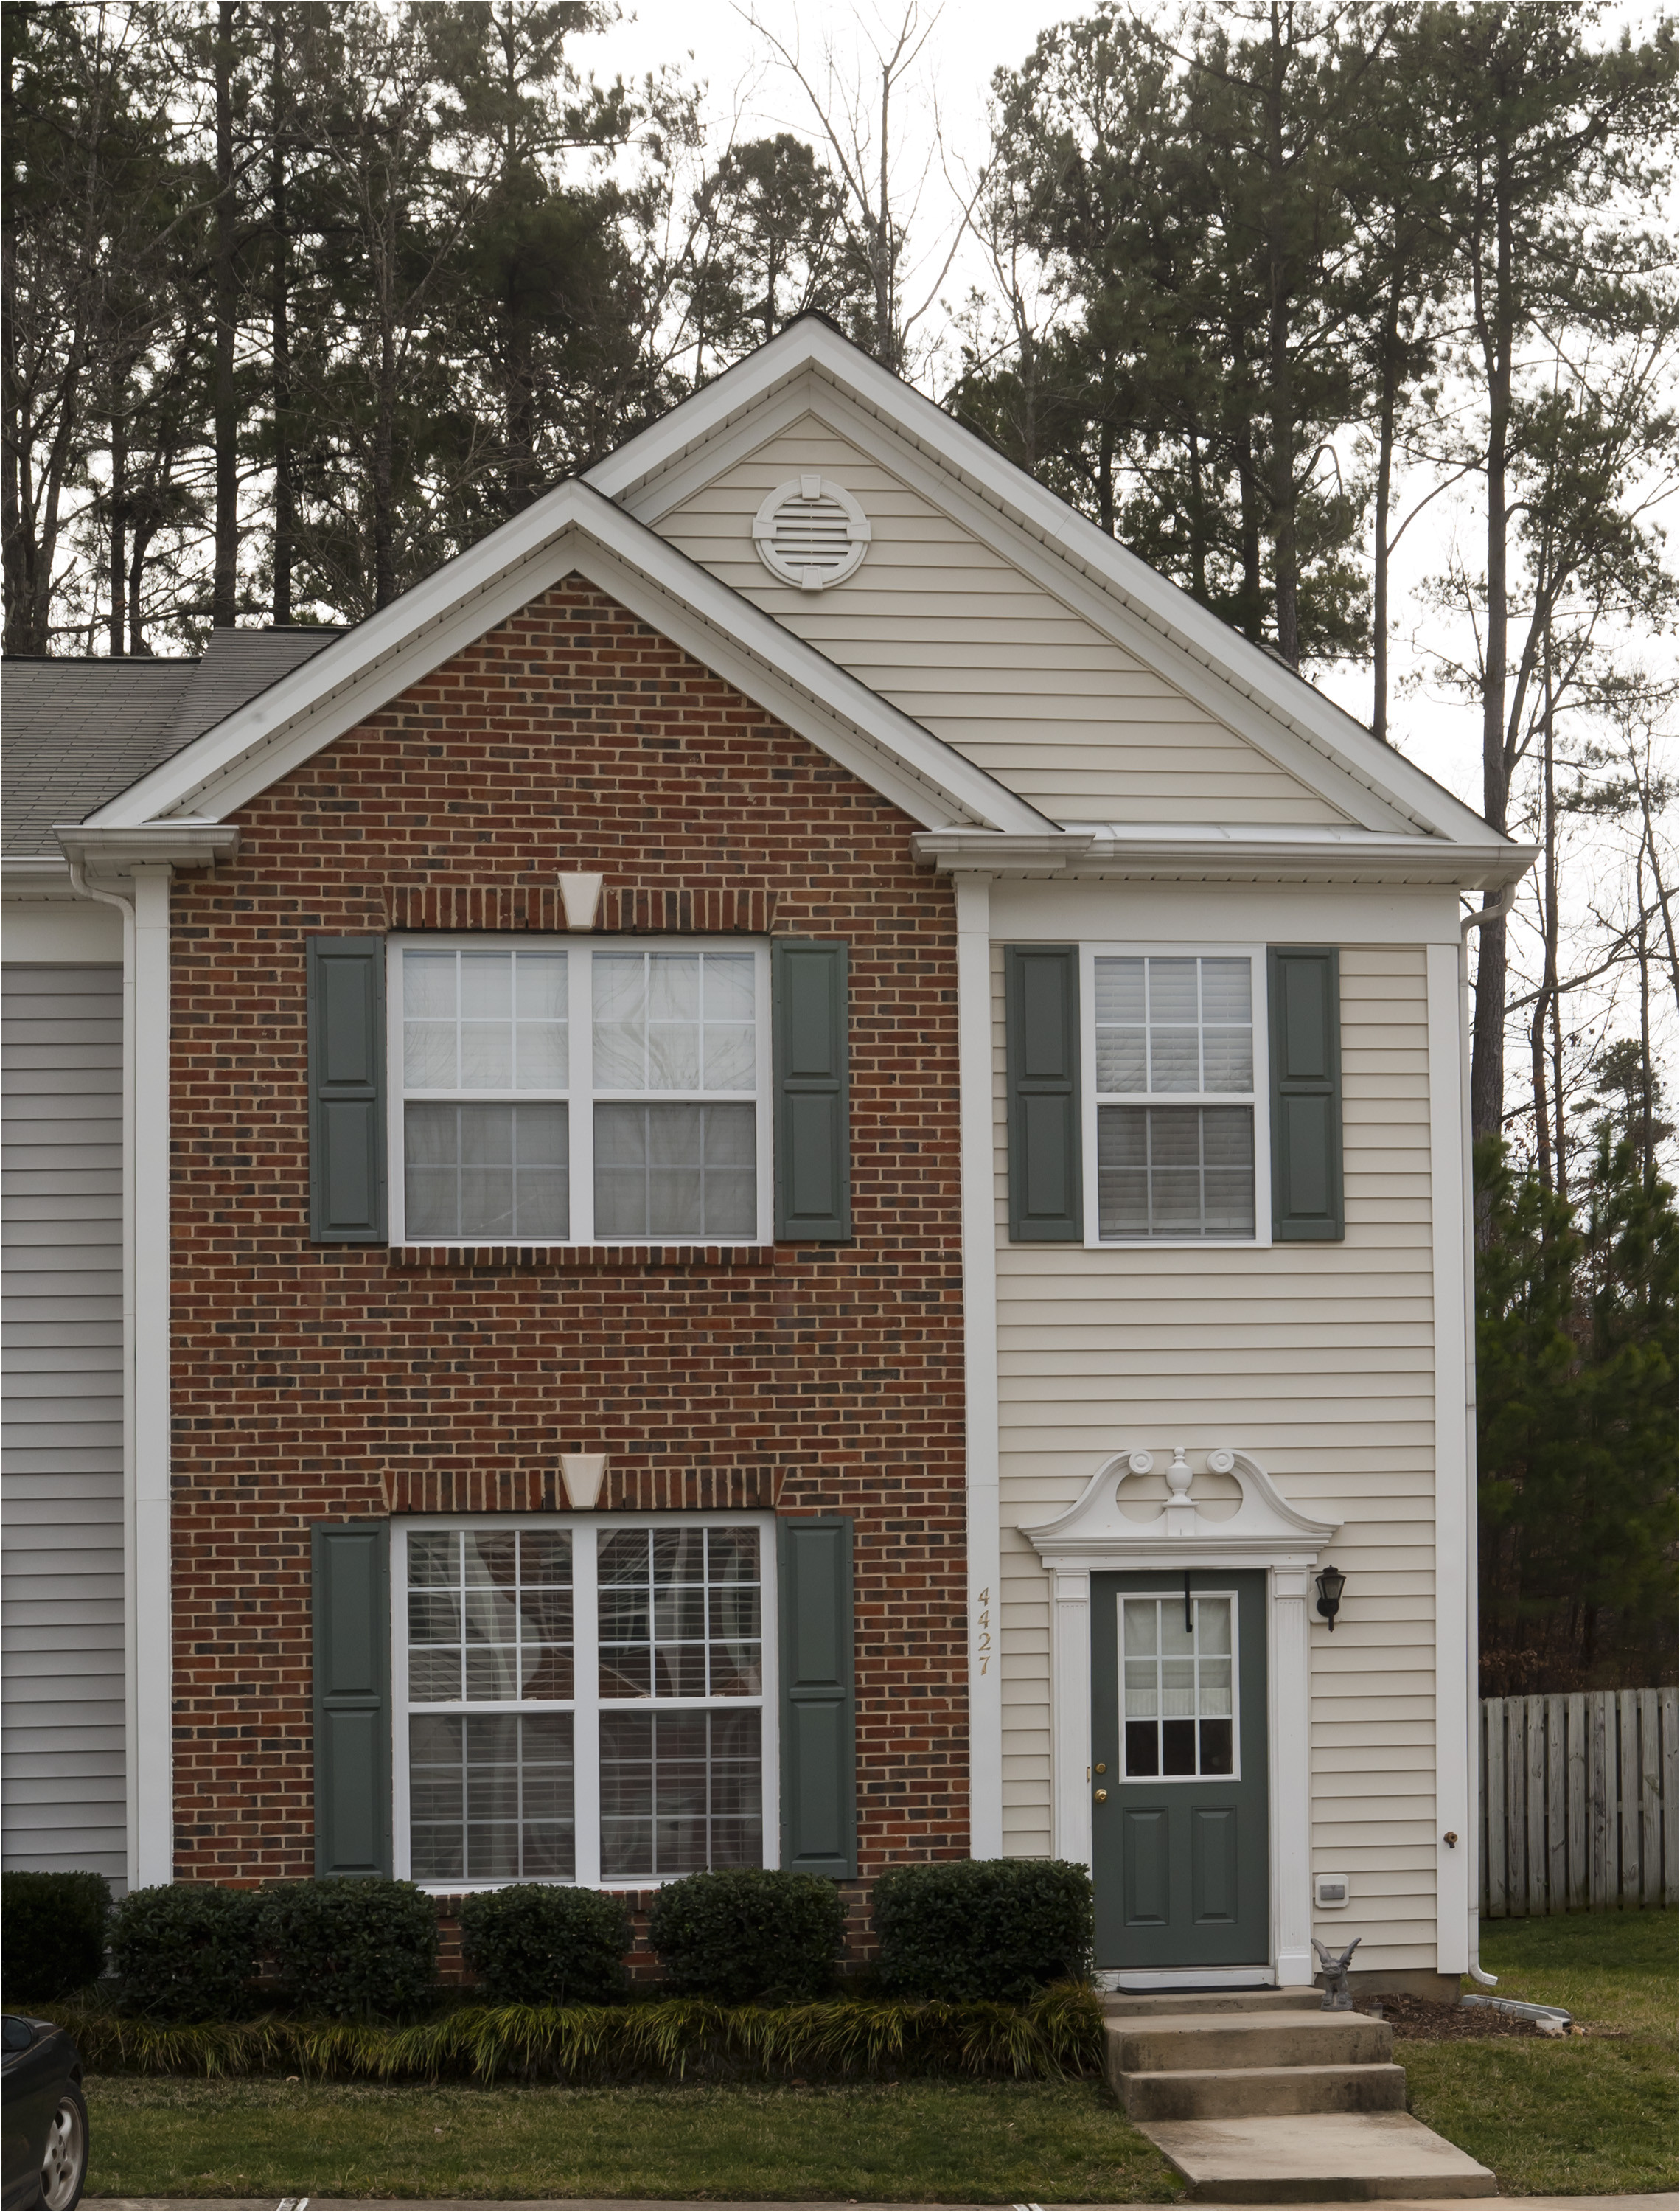 come and visit katie sunday february 1st from 12 3pm at 312 madison grove lane in cary she will be at a beautiful townhome tomorrow in the carpenter